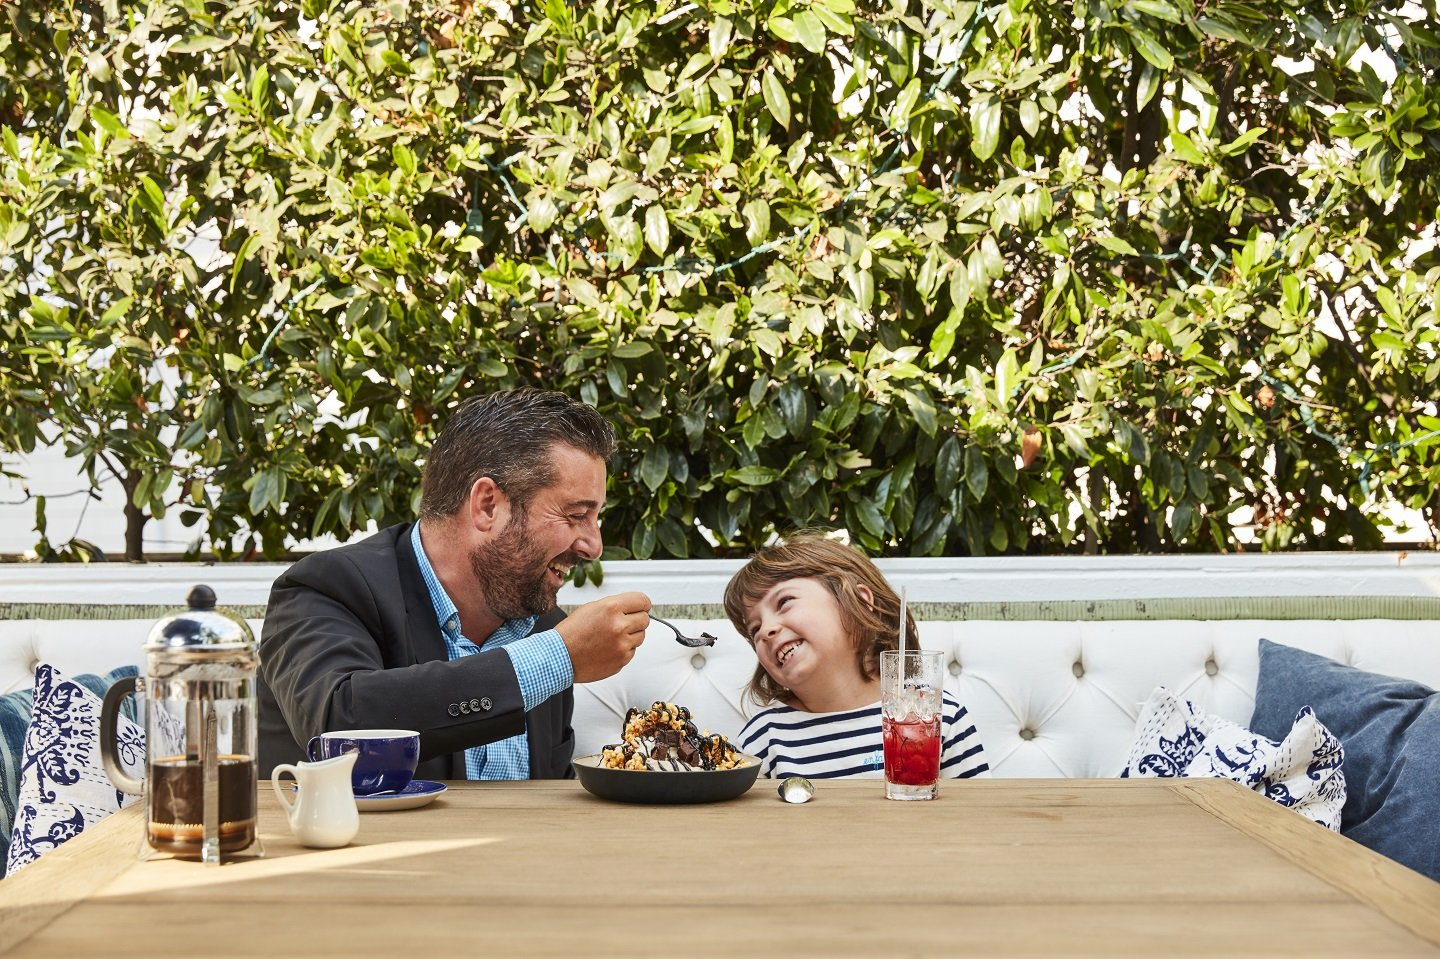 Franck Savoy creates masterful culinary experiences at Shutters on the Beach and Hotel Casa del Mar. - Waves